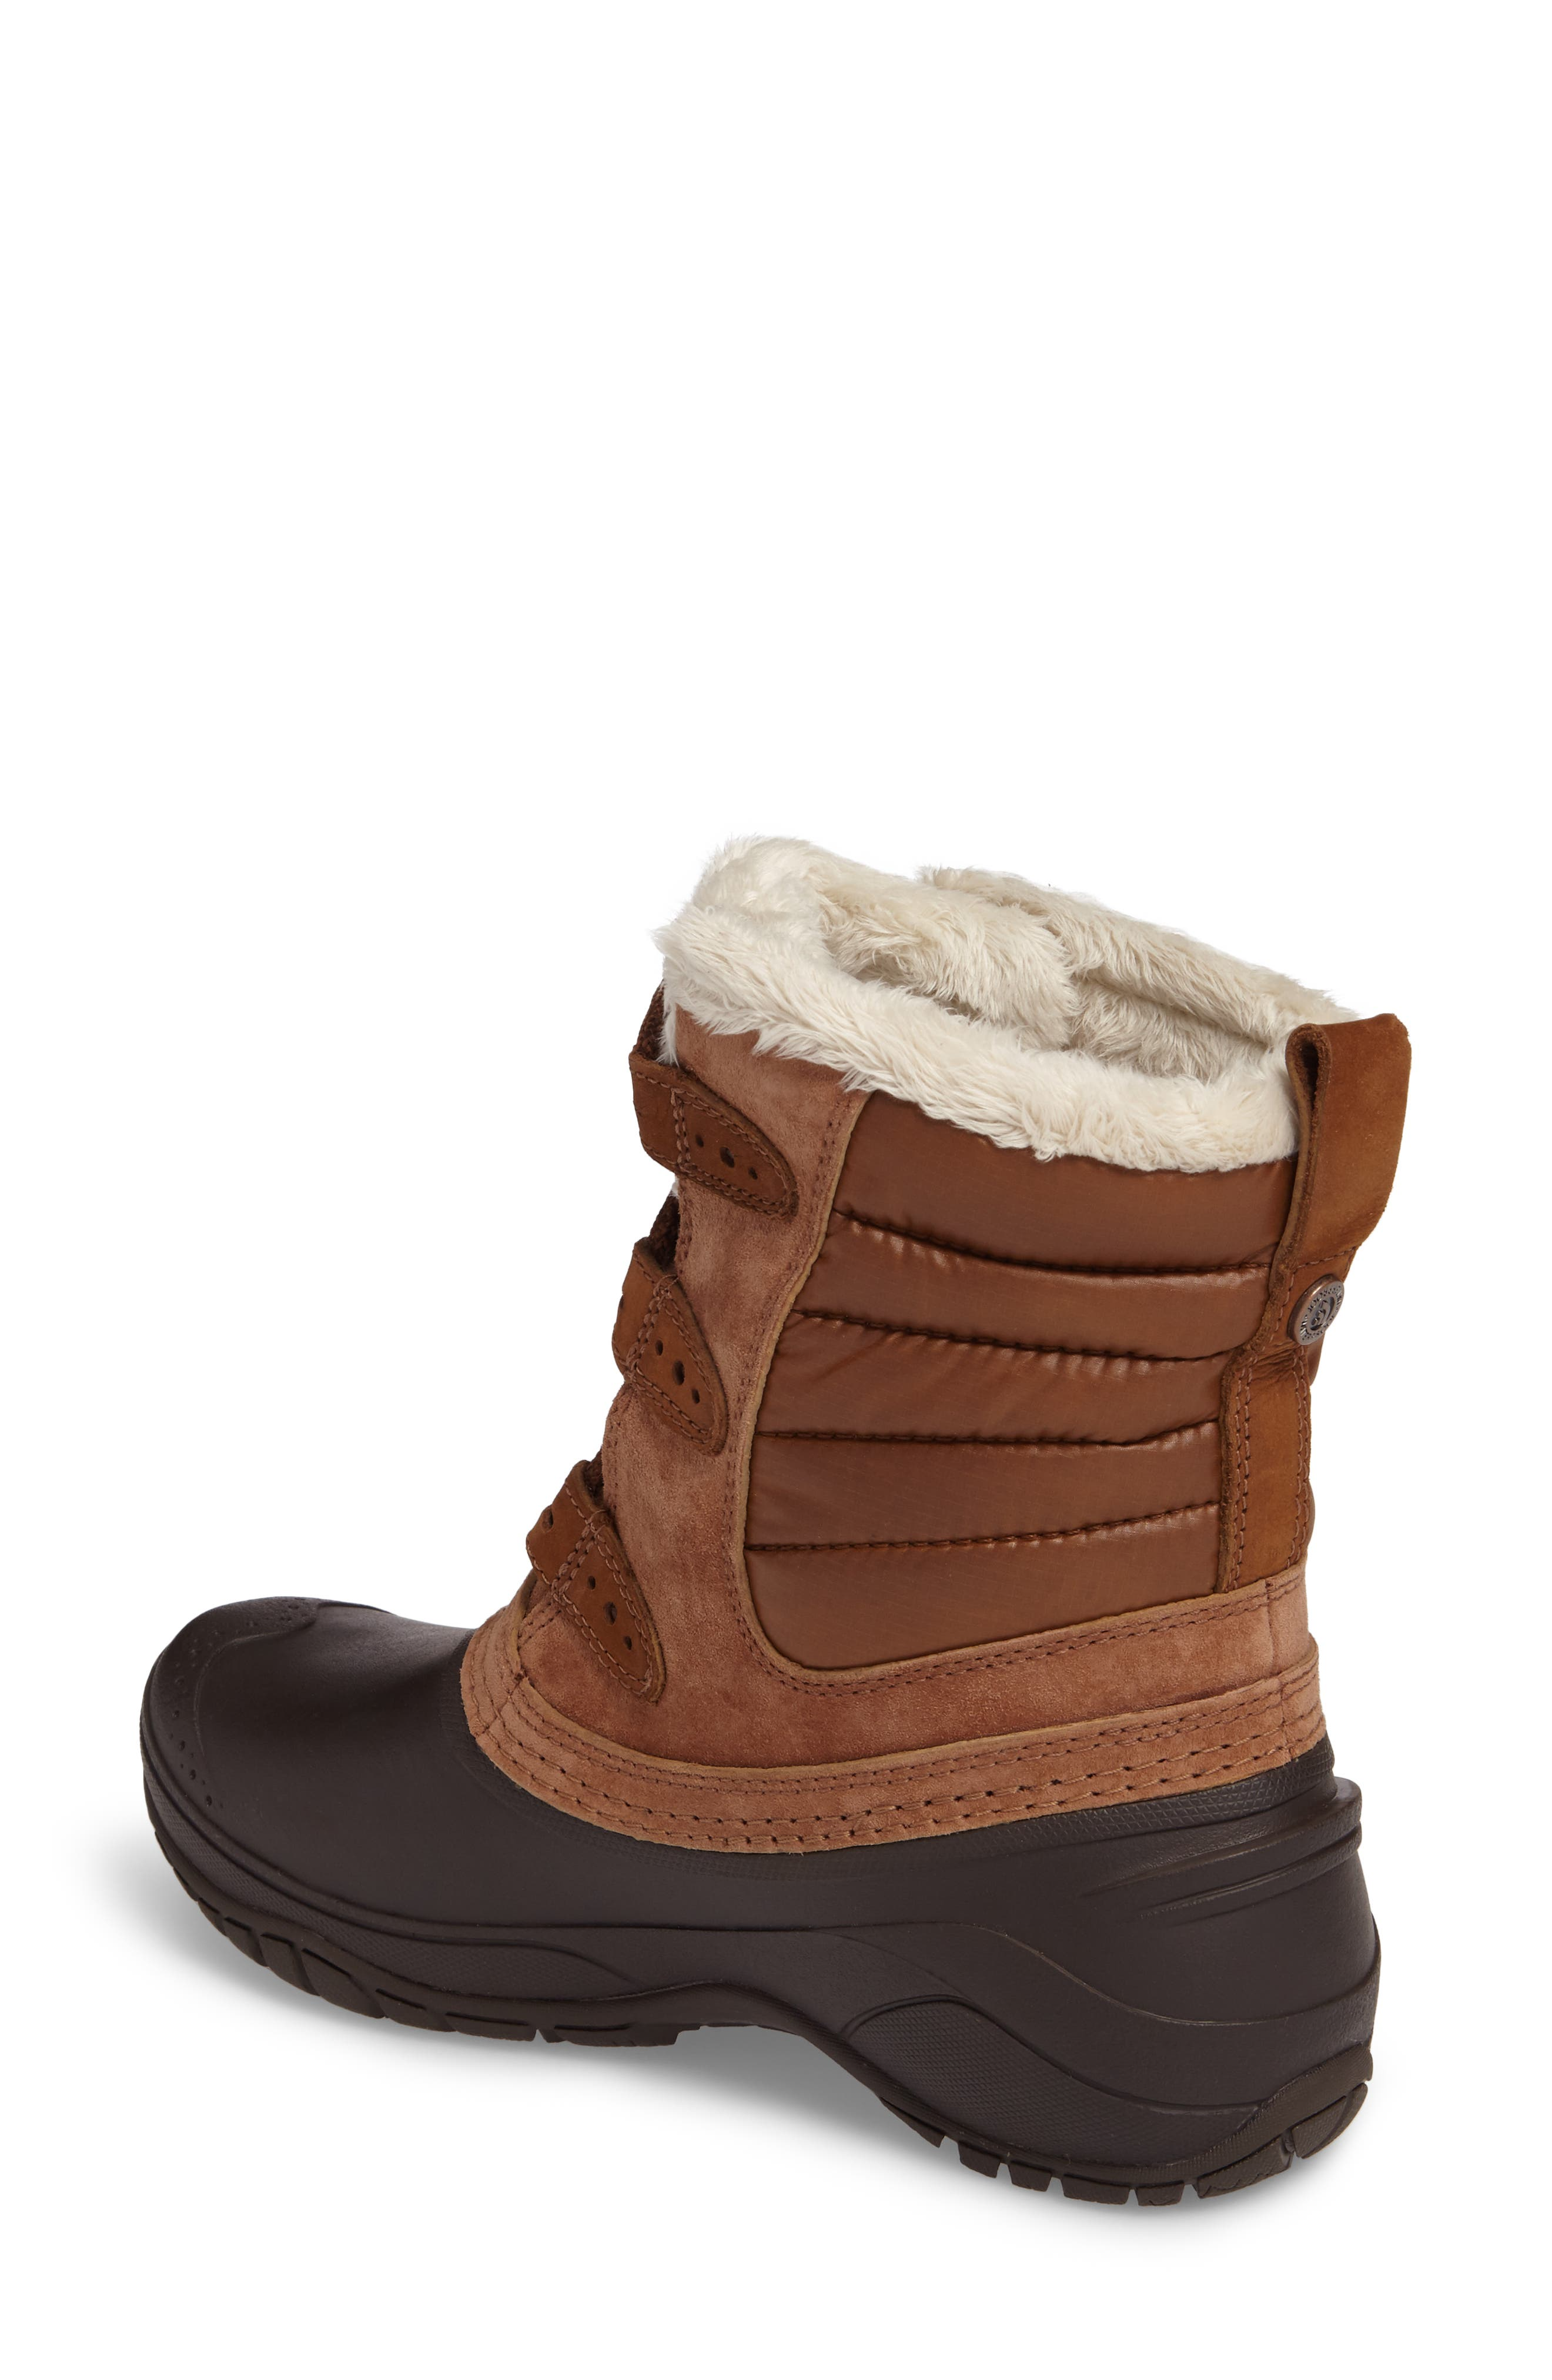 Shellista II Waterproof Boot,                             Alternate thumbnail 2, color,                             Dachshund Brown/ Vintage White